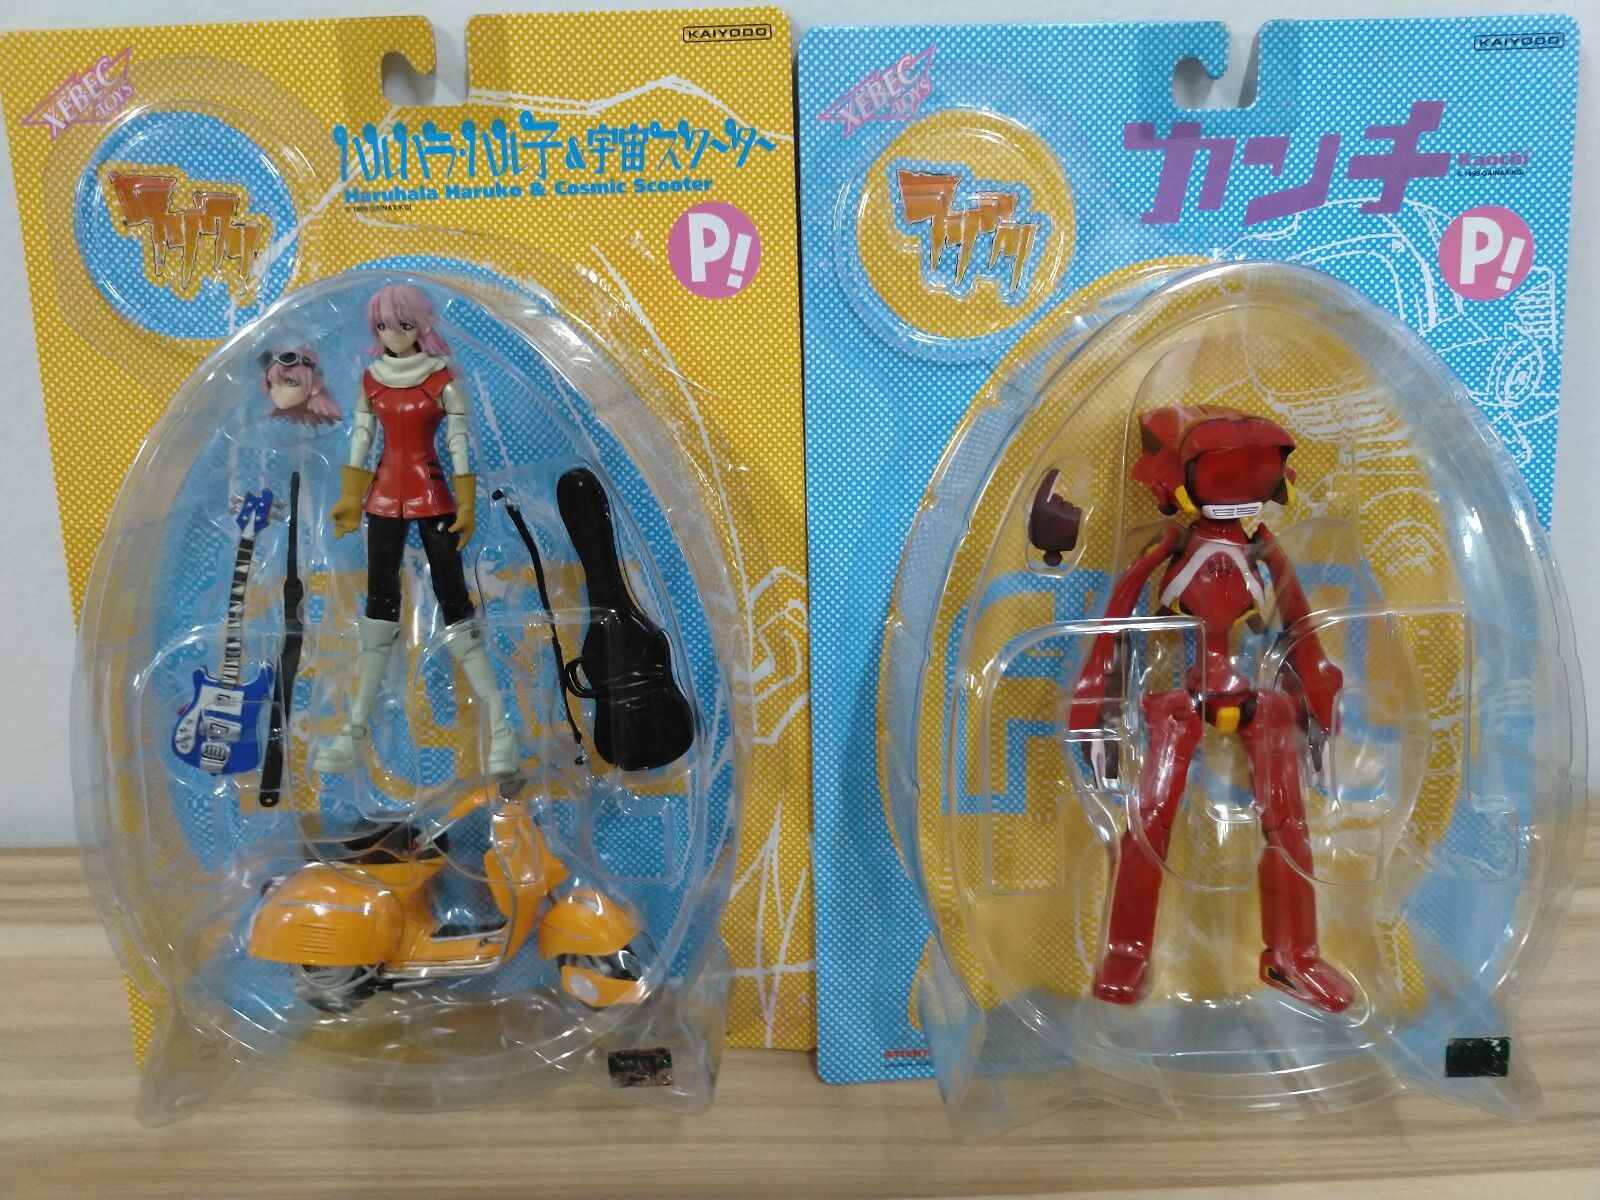 Kaiyodo FOOLY COOLY FLCL Kanti   Canti and Haruko Action Figure Set